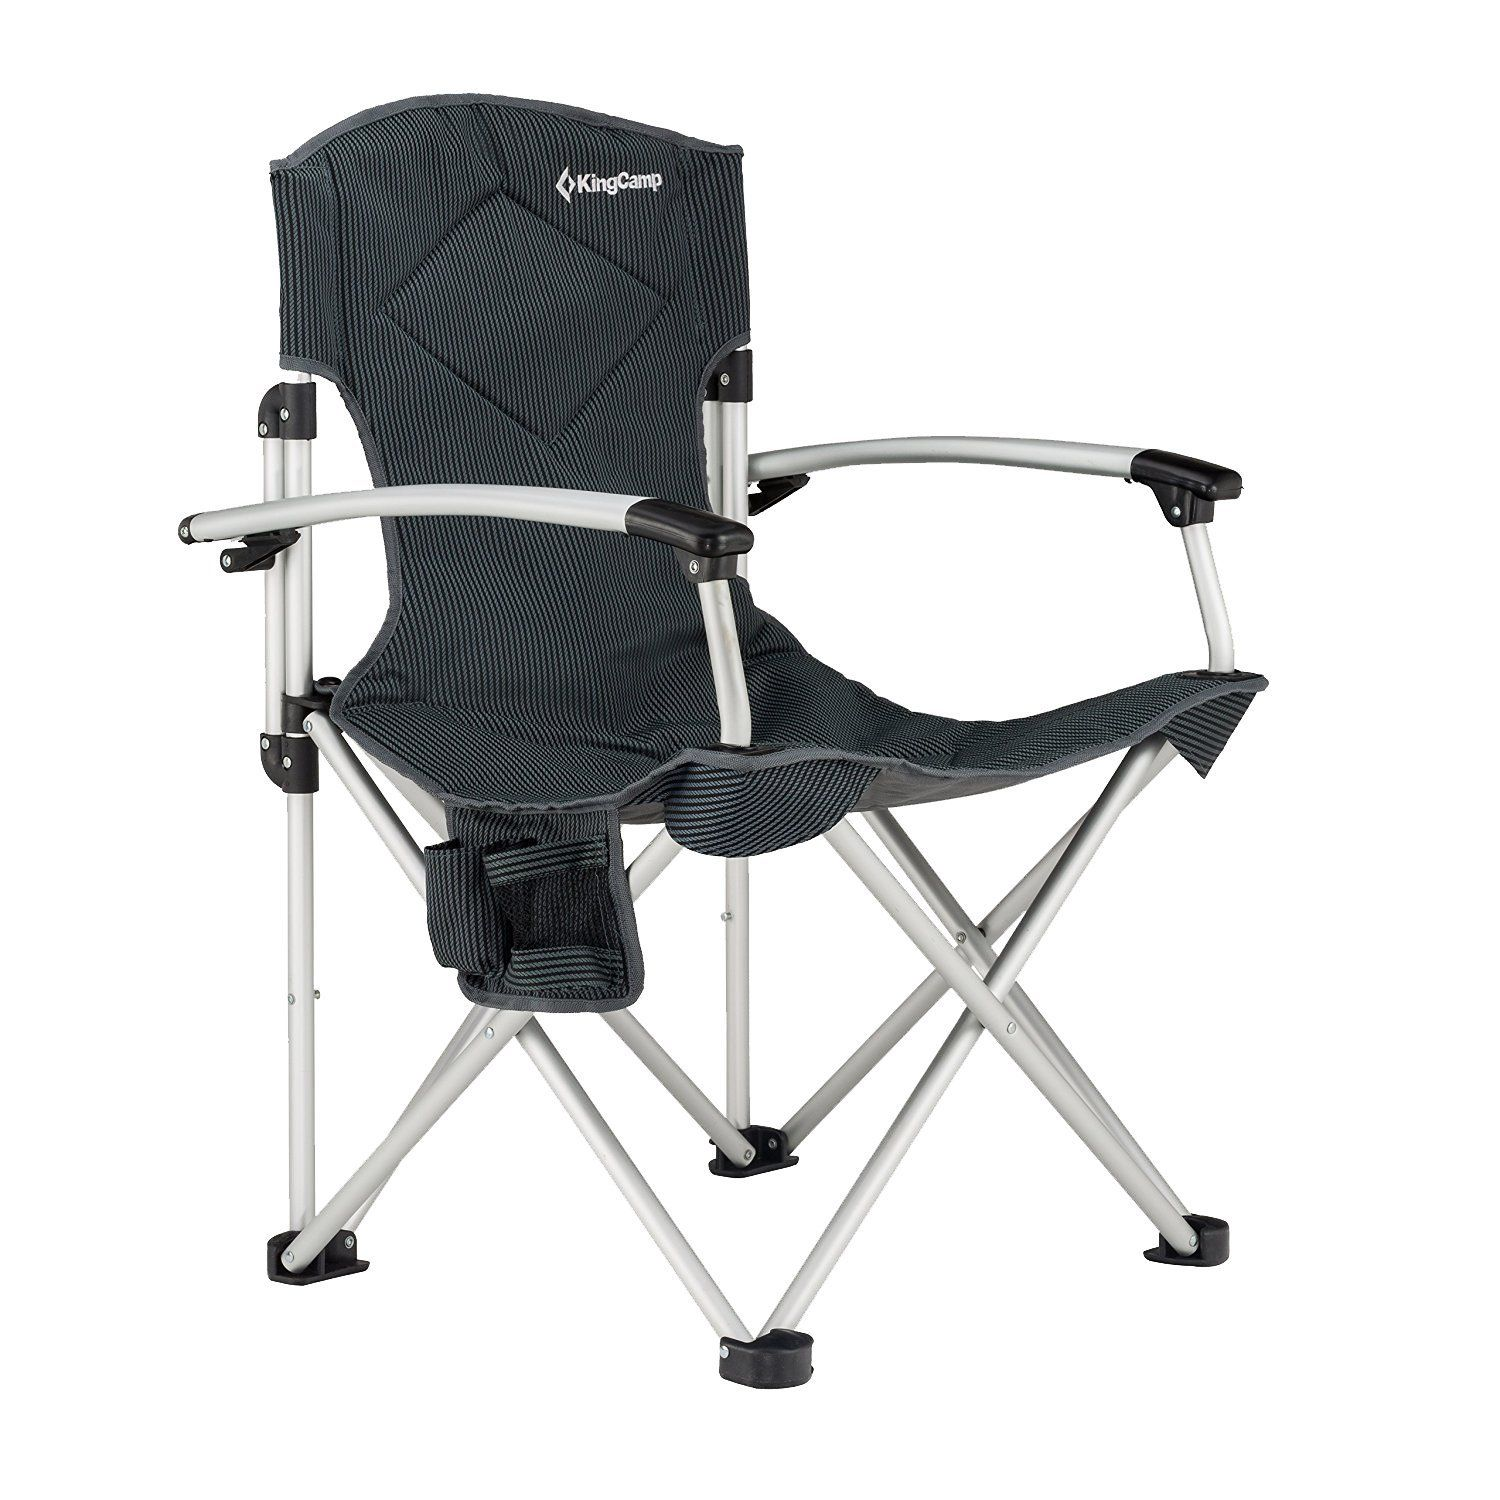 KingCamp Aluminum Portable Heavy Duty Folding Camping Chair Carry